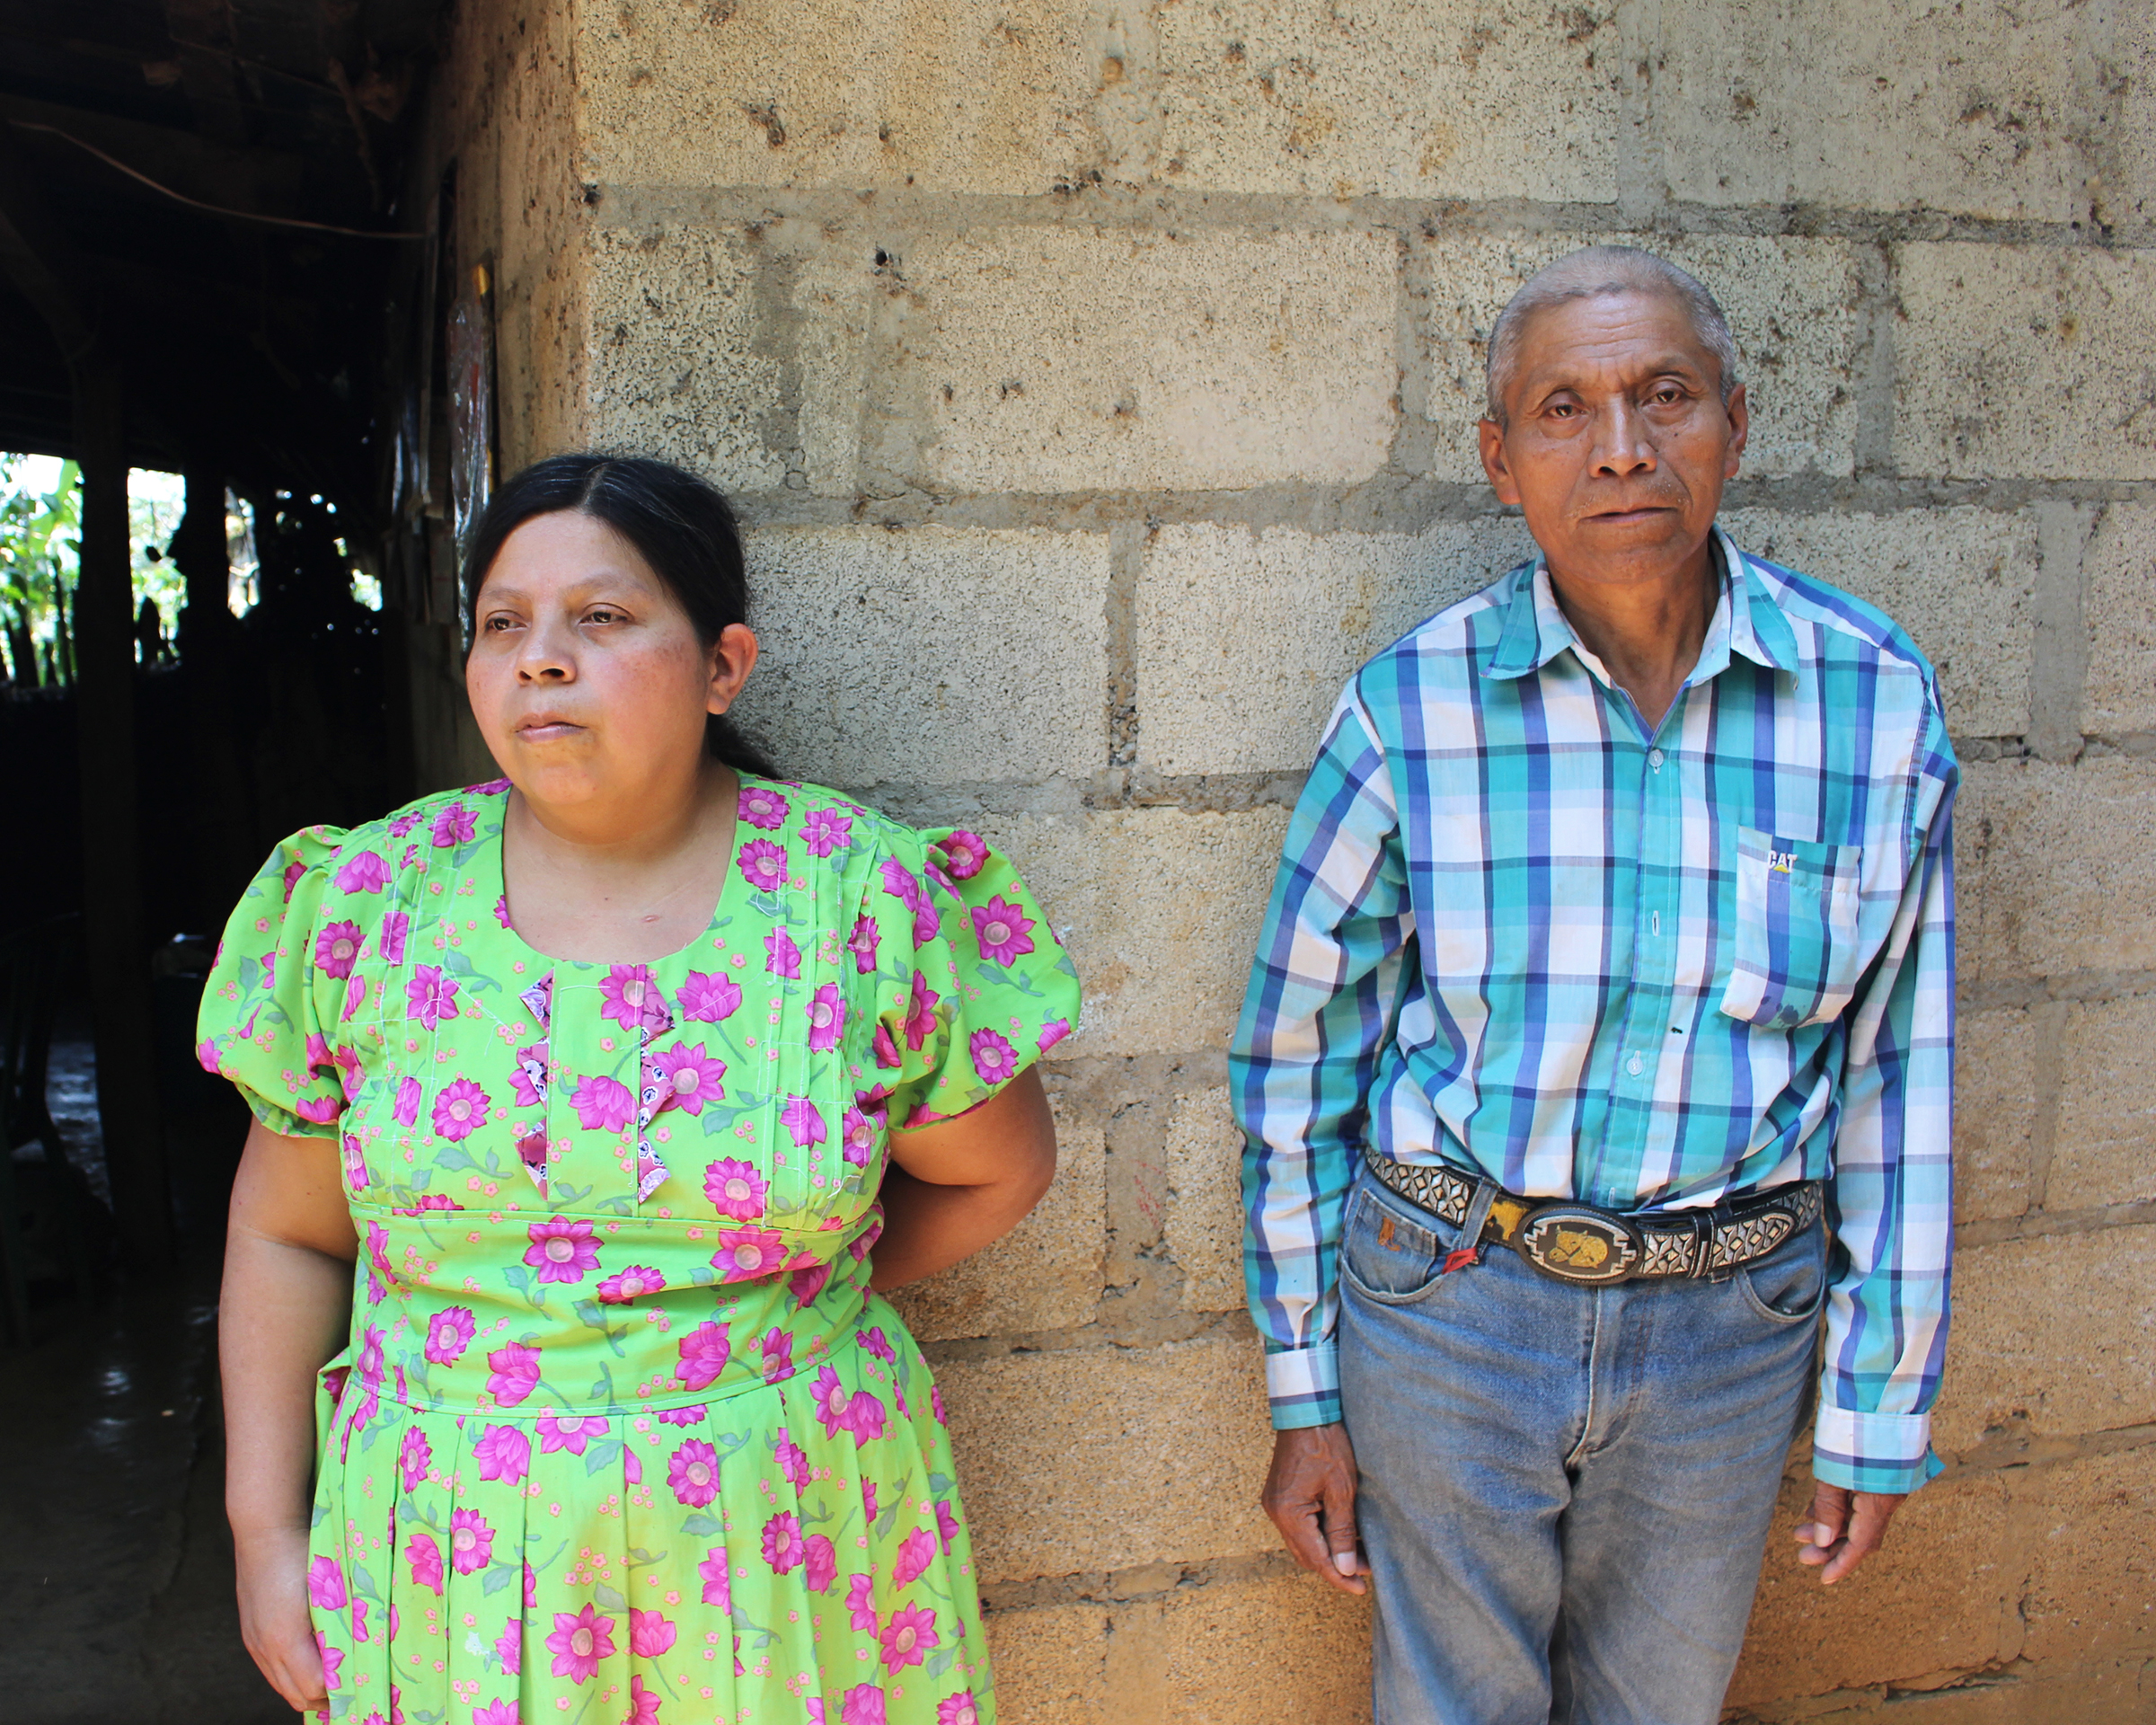 Juan de León Gutiérrez's parents, Tránsito Gutiérrez and Tanerjo de Léon, outside their home in El Tesoro, Guatemala.